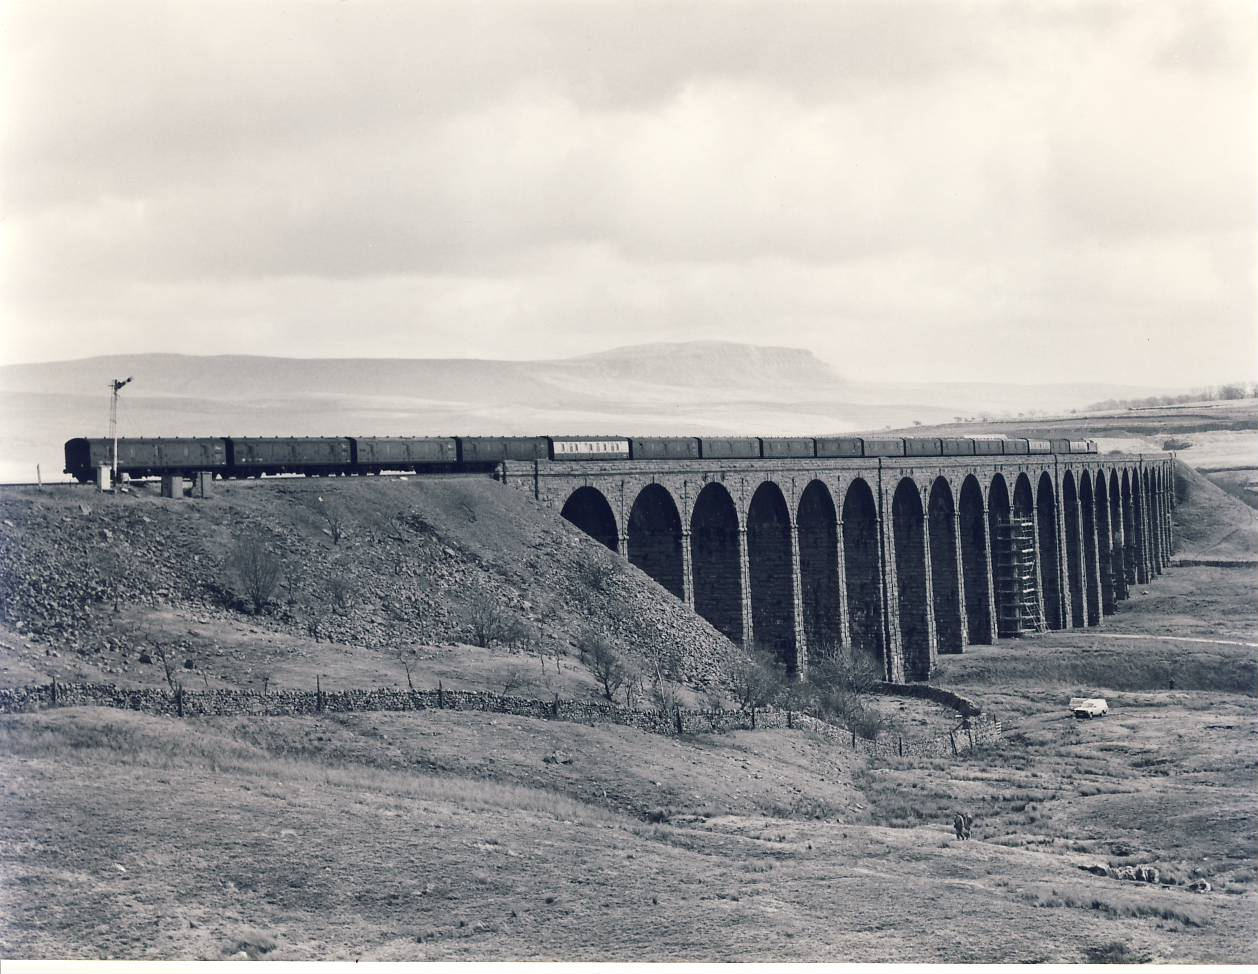 1983 Ribbleshead Viaduct Redbank parcels Train Photo refSC153 Measure approx 6.5 x 8.5 inches / 16cm x 21cm - an original 'W.A.Sharman' black and white photographic print pre-owned item in very good condition. Details on reverse.